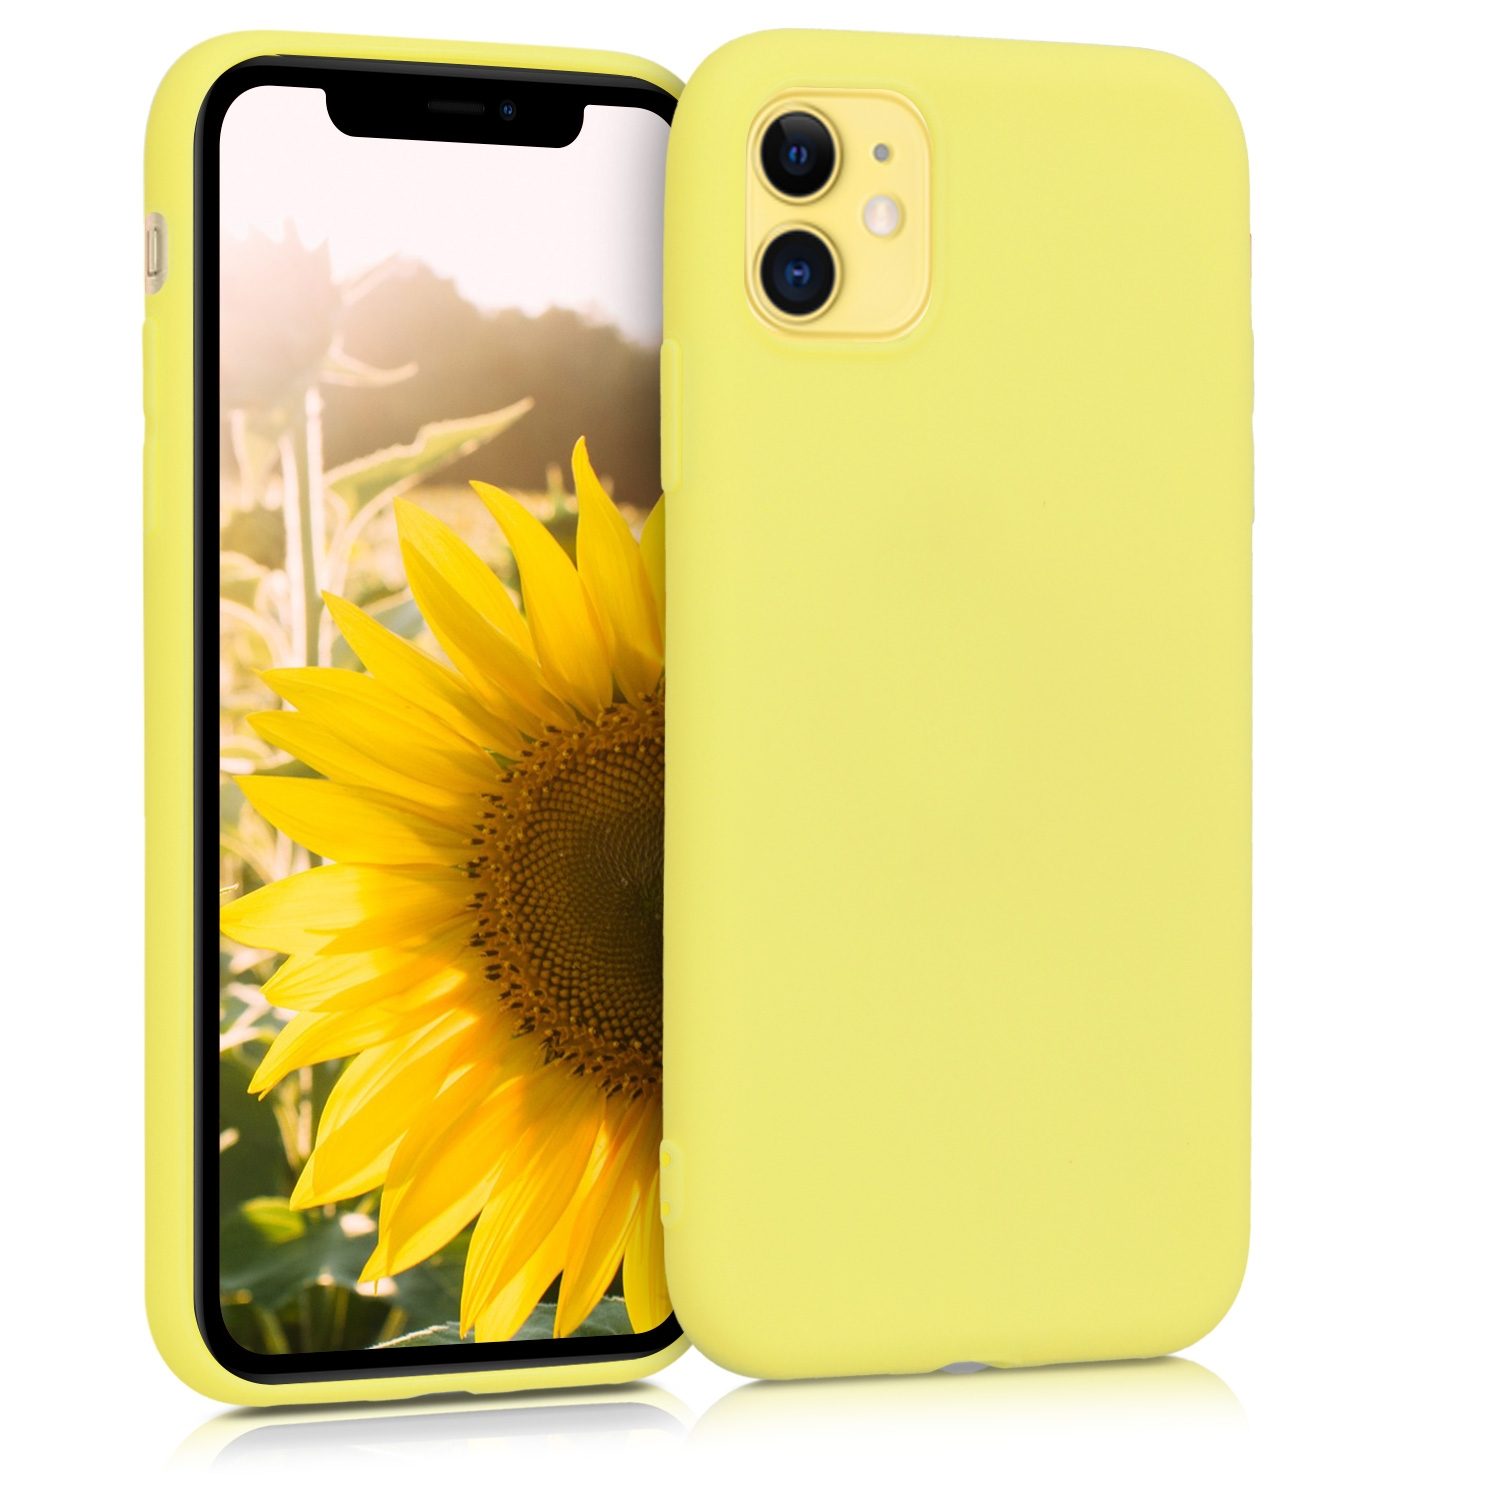 KW Θήκη Σιλικόνης Apple iPhone 11 - Pastel Yellow Matte (49787.119)